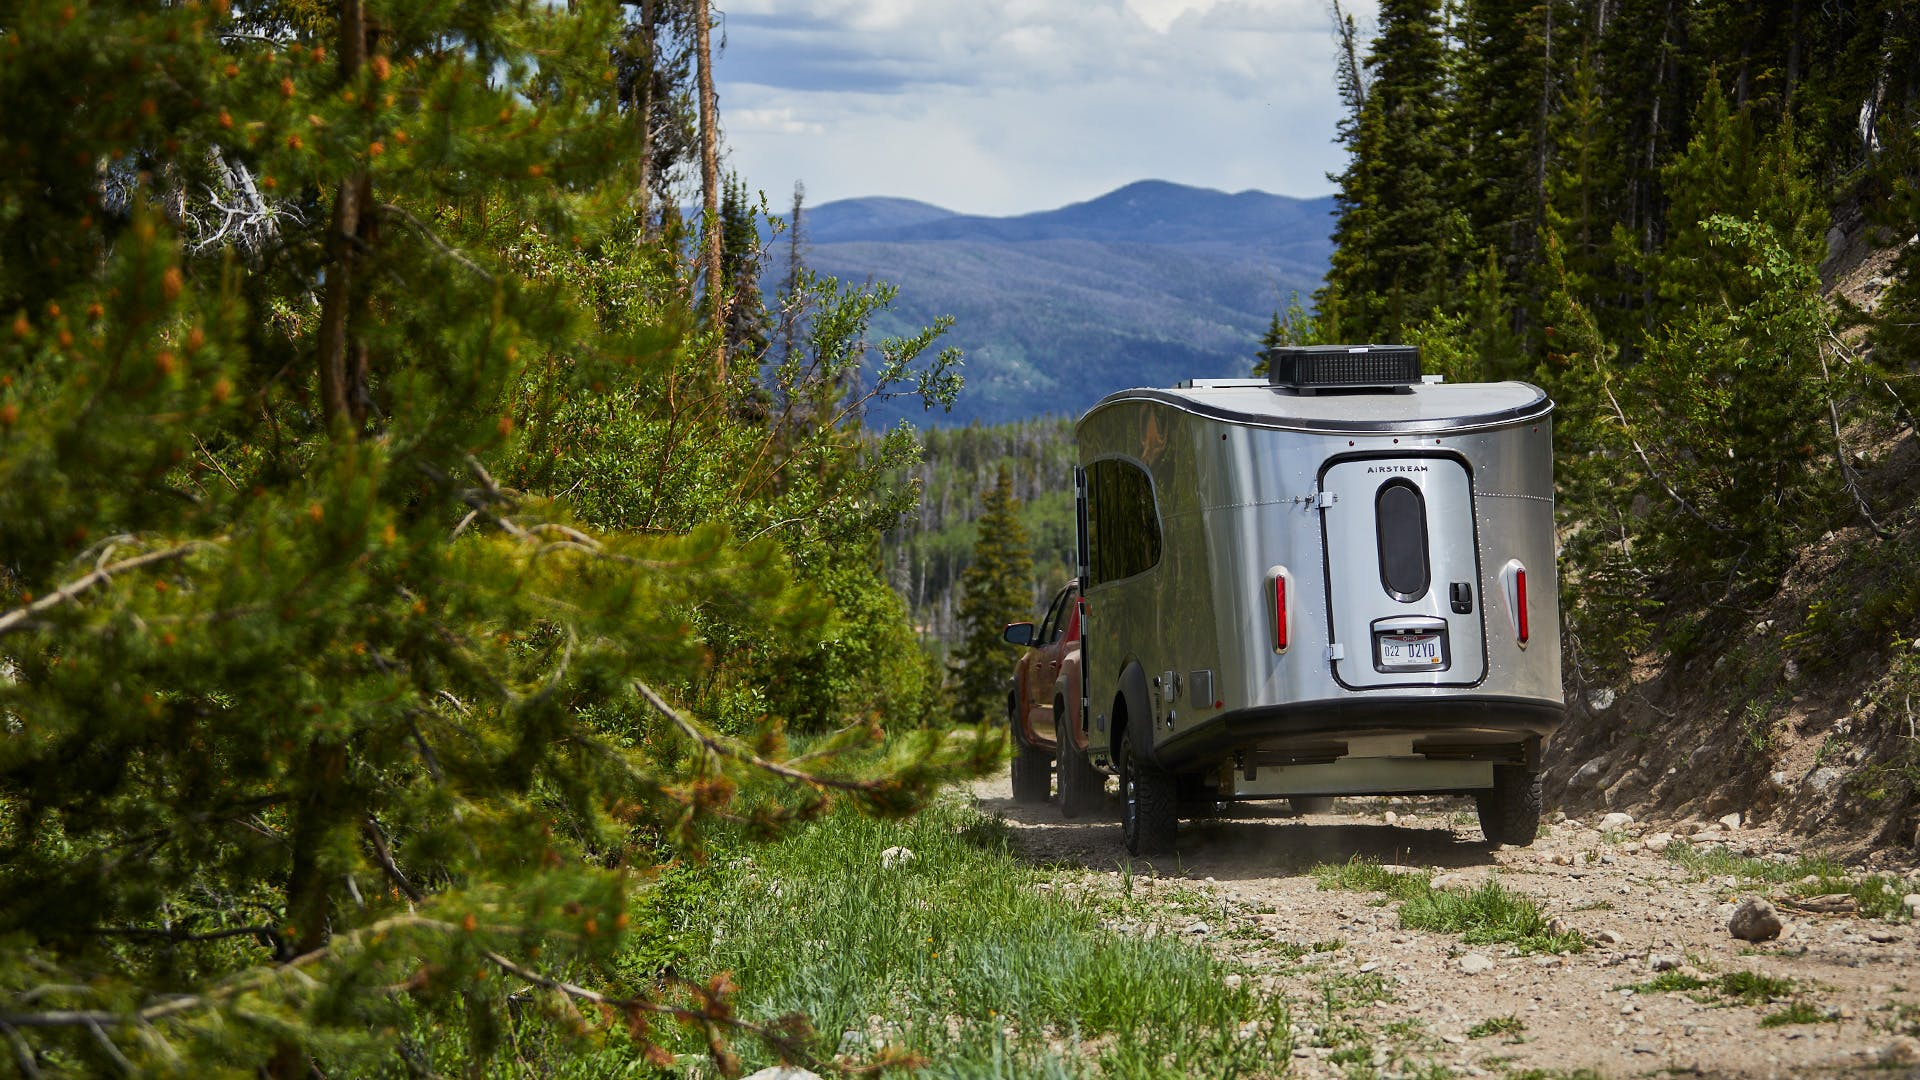 Airstream-Basecamp-20X-Off-the-Trail-Capability